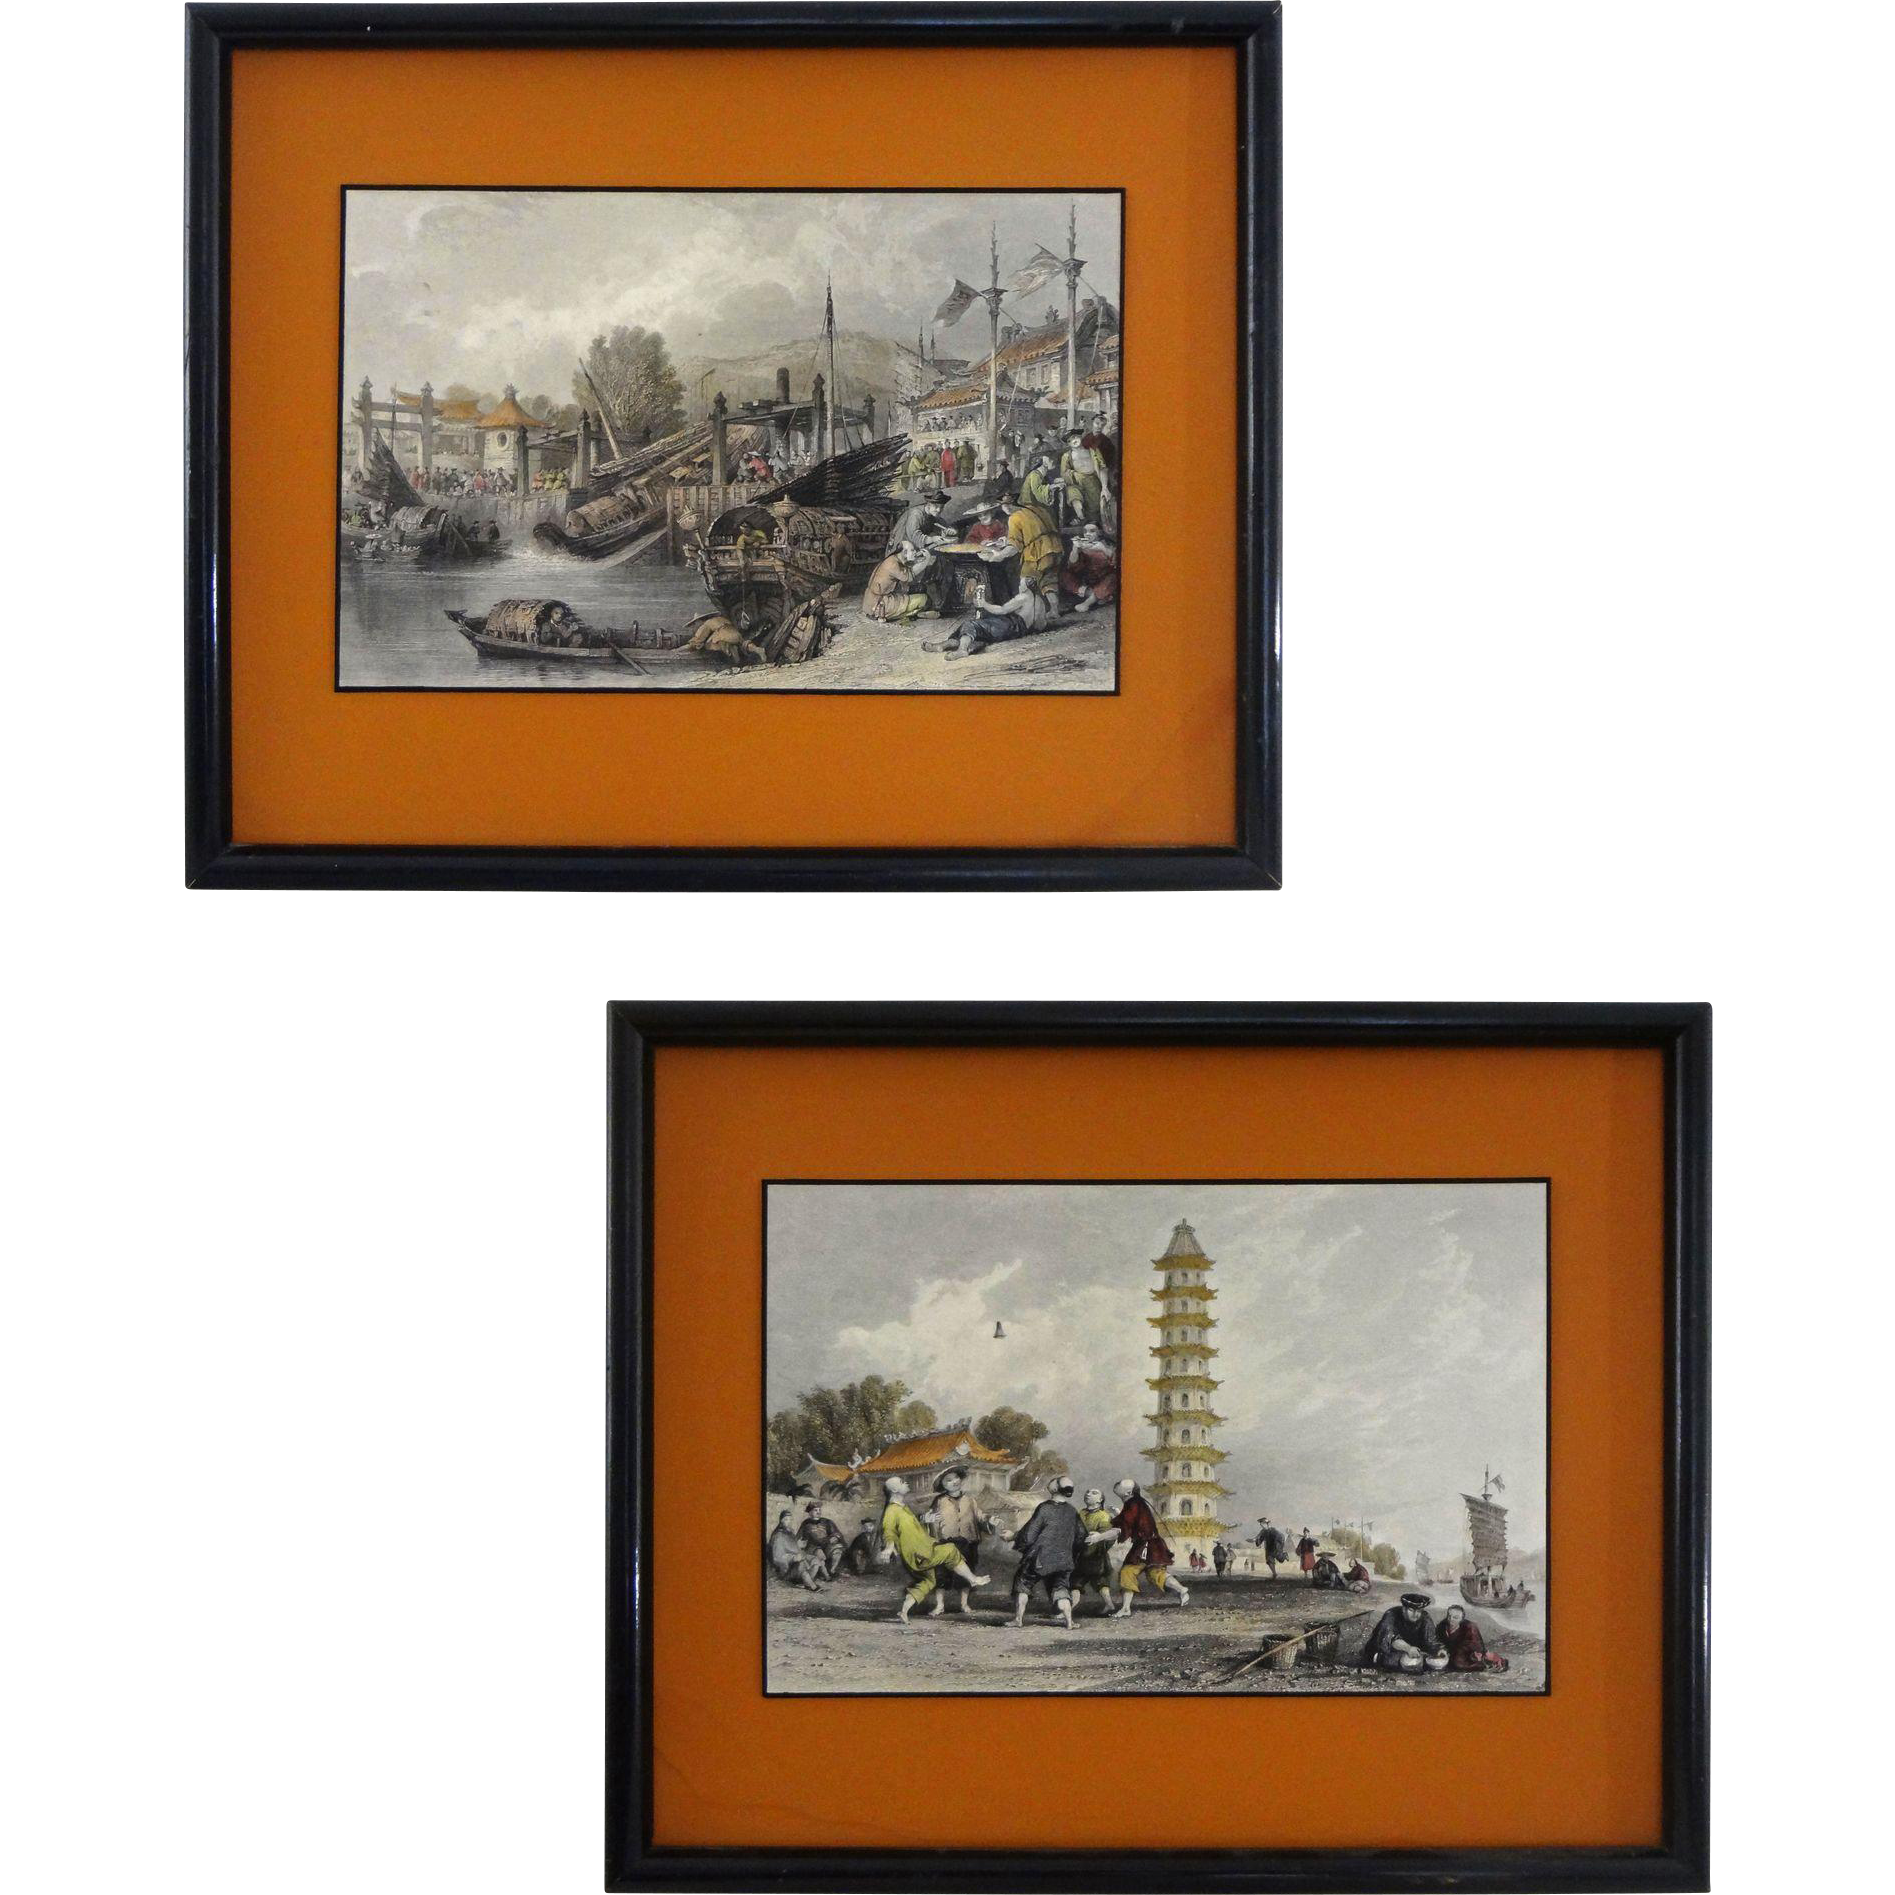 Pair China Scenes Color Steel Engravings after Thomas Allom - c. 1845, England